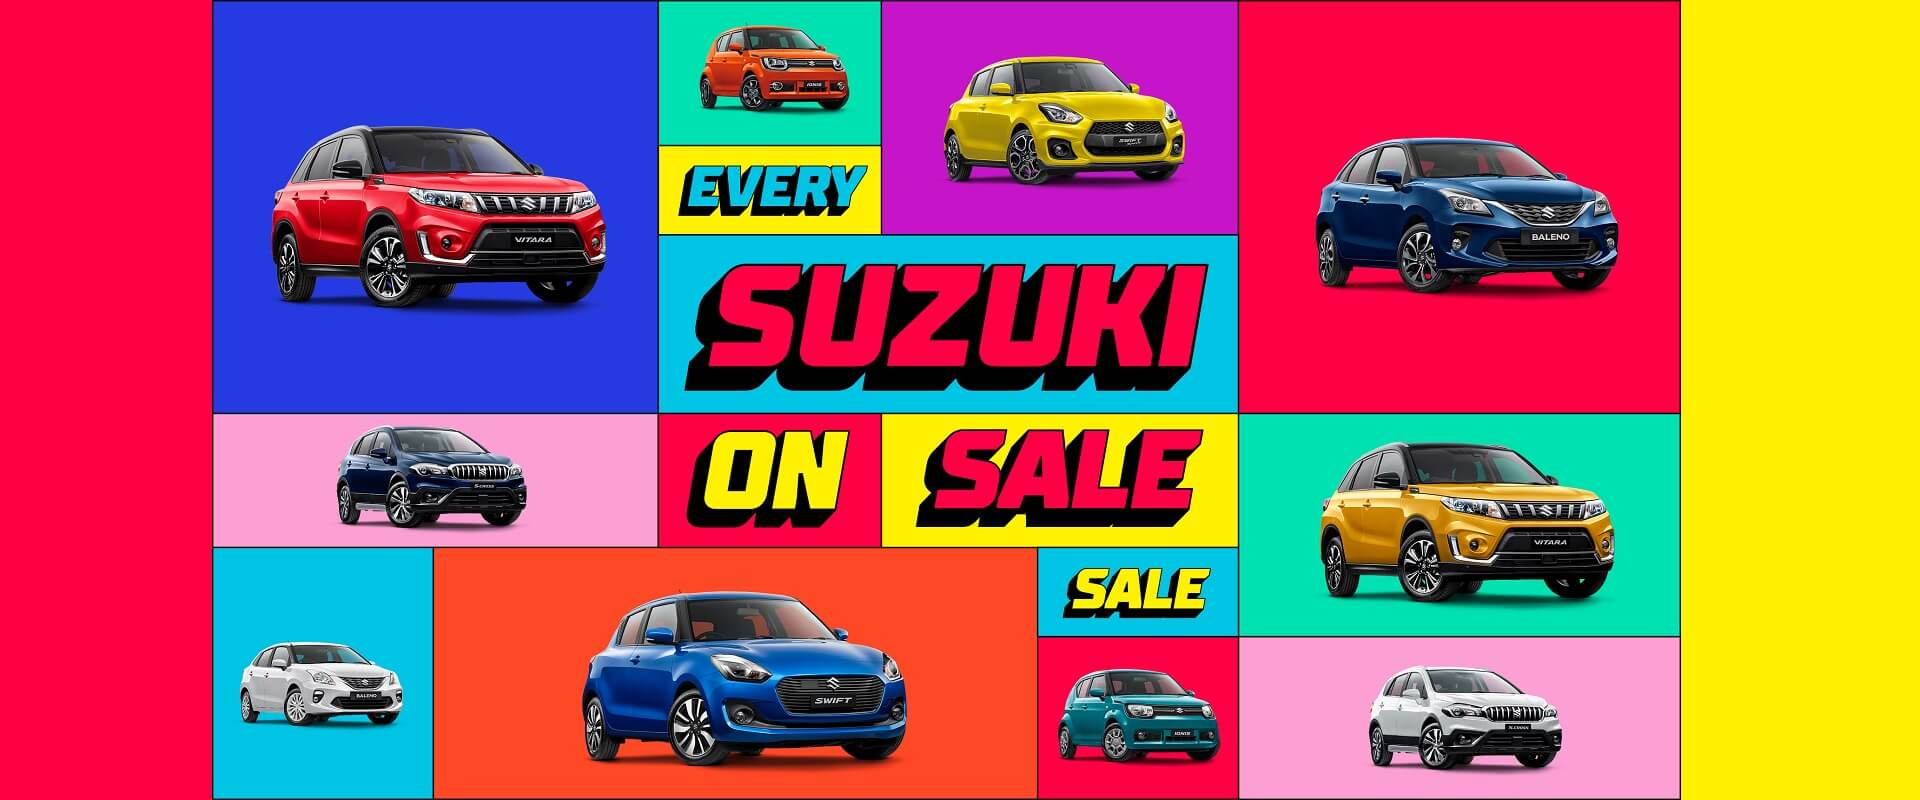 Every Suzuki On Sale Sale